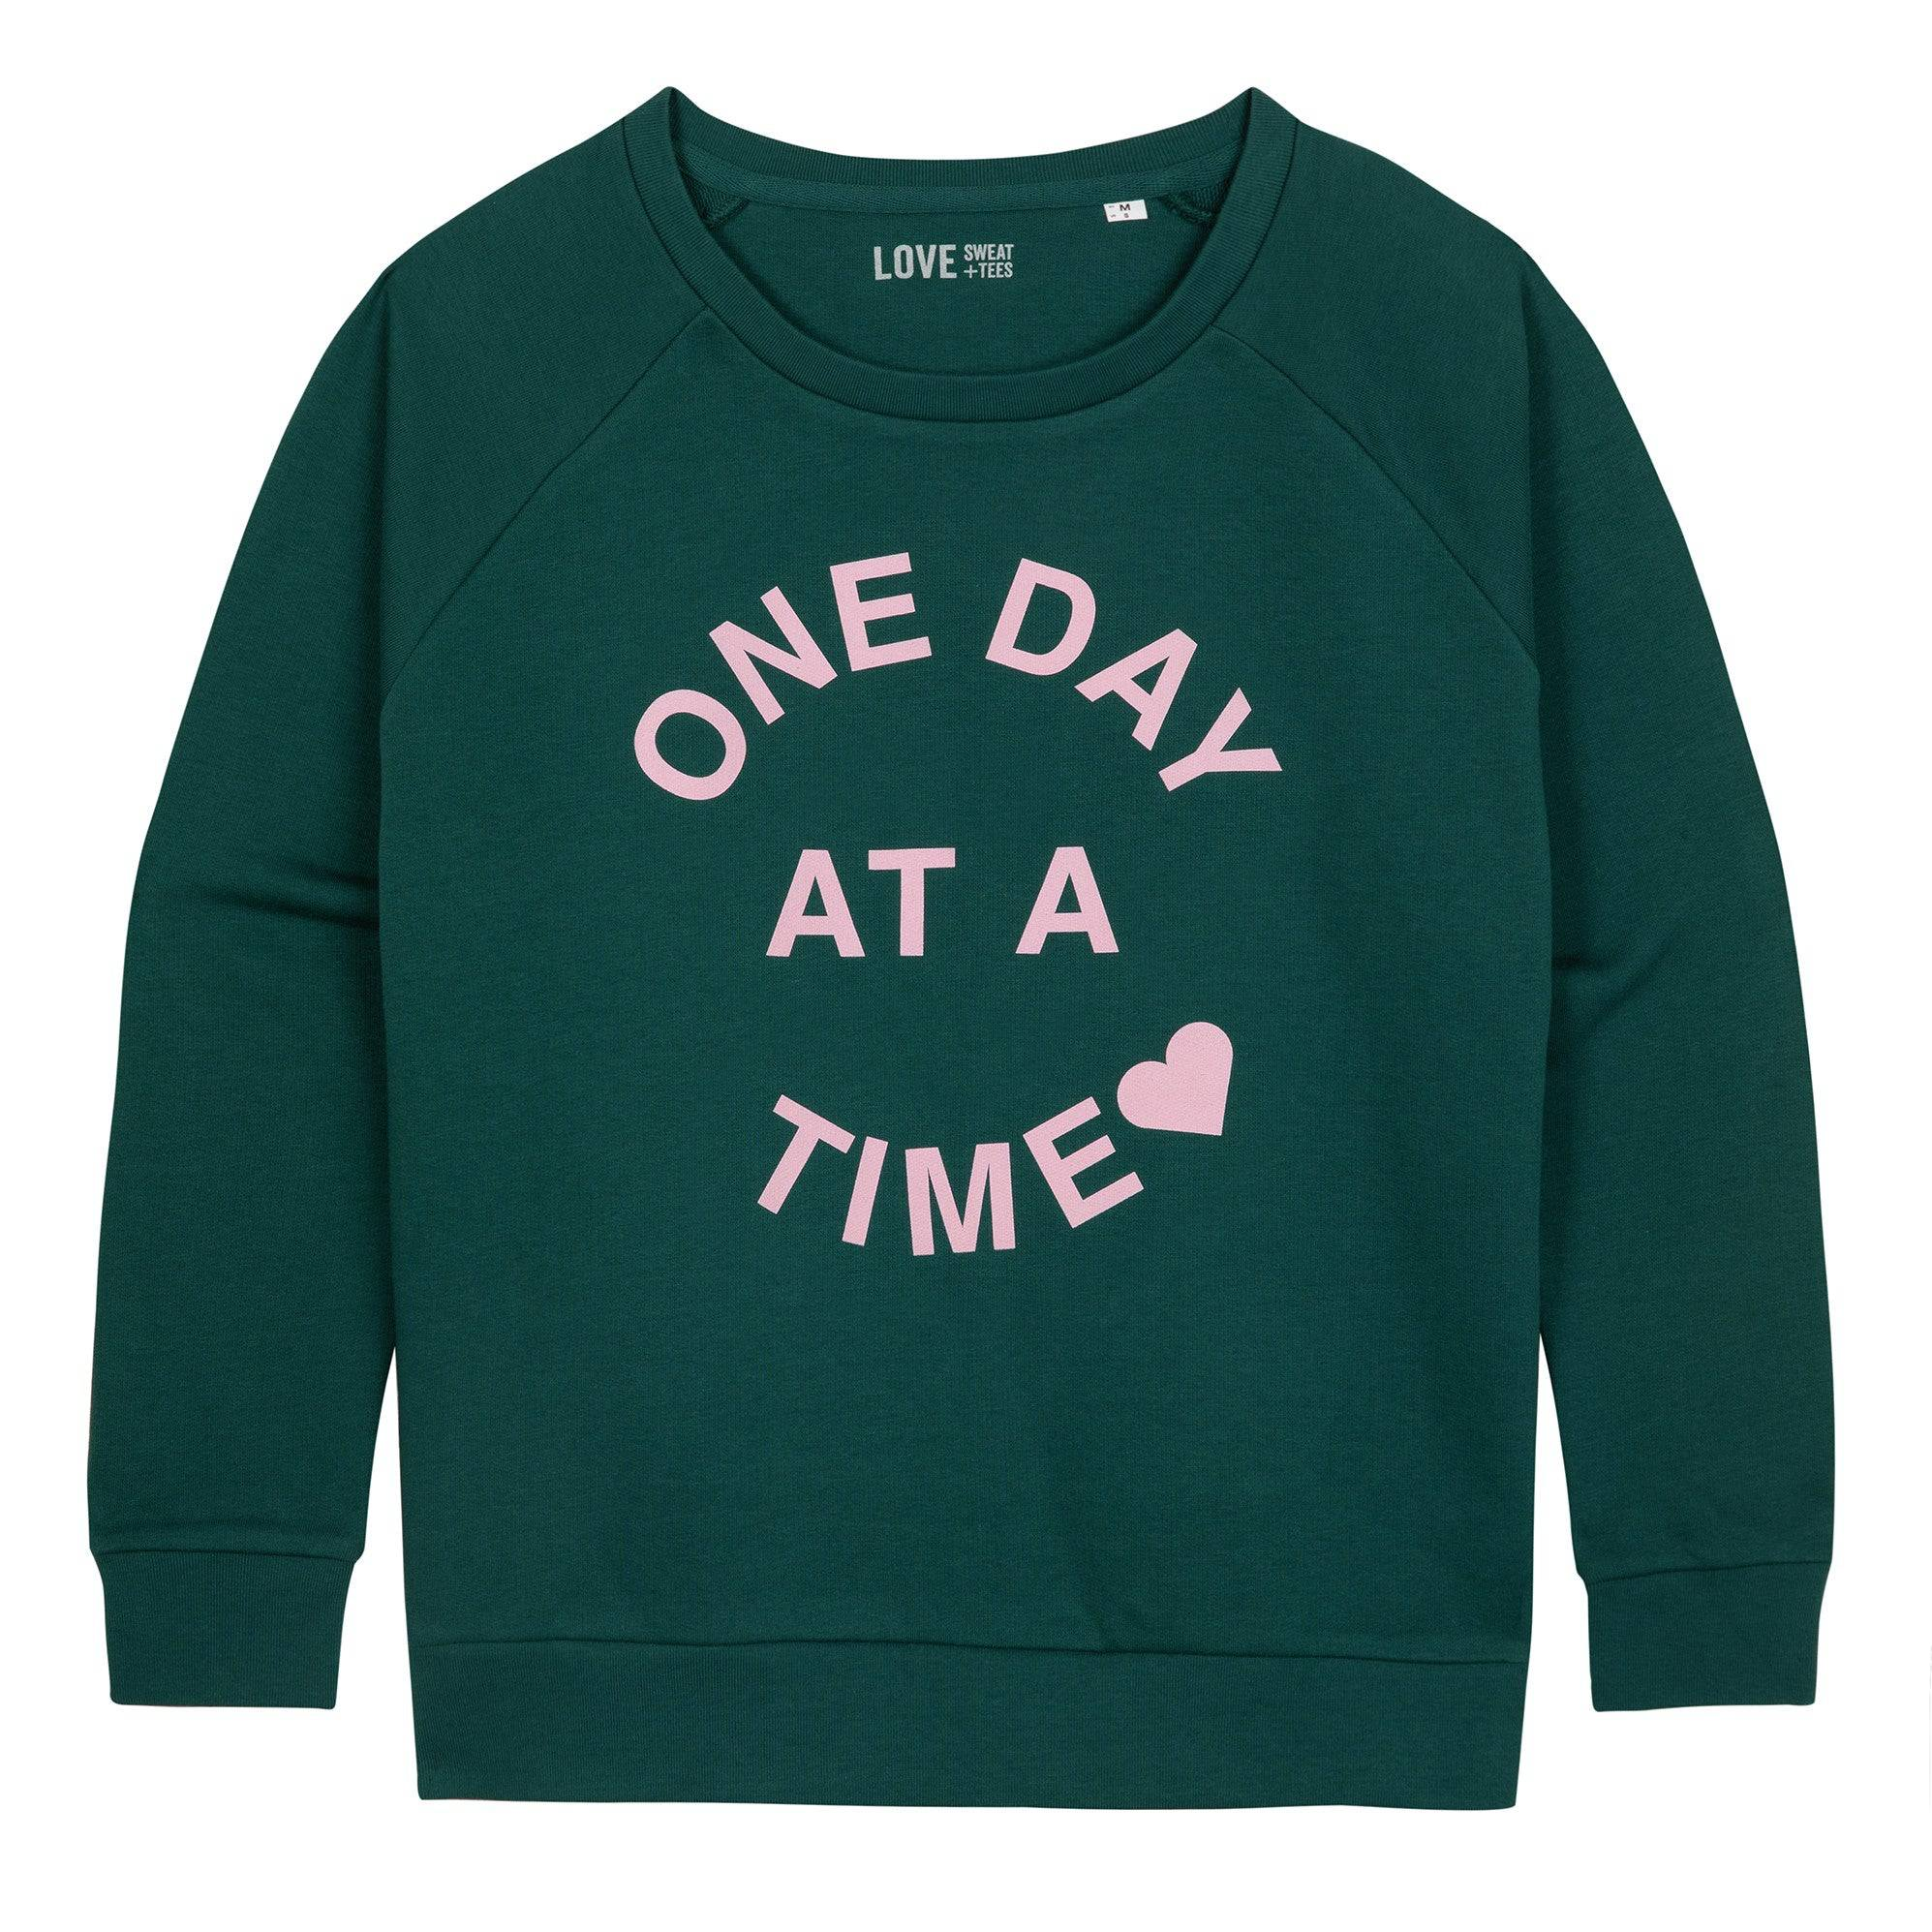 One Day at a Time Sweat (Pink on Green)